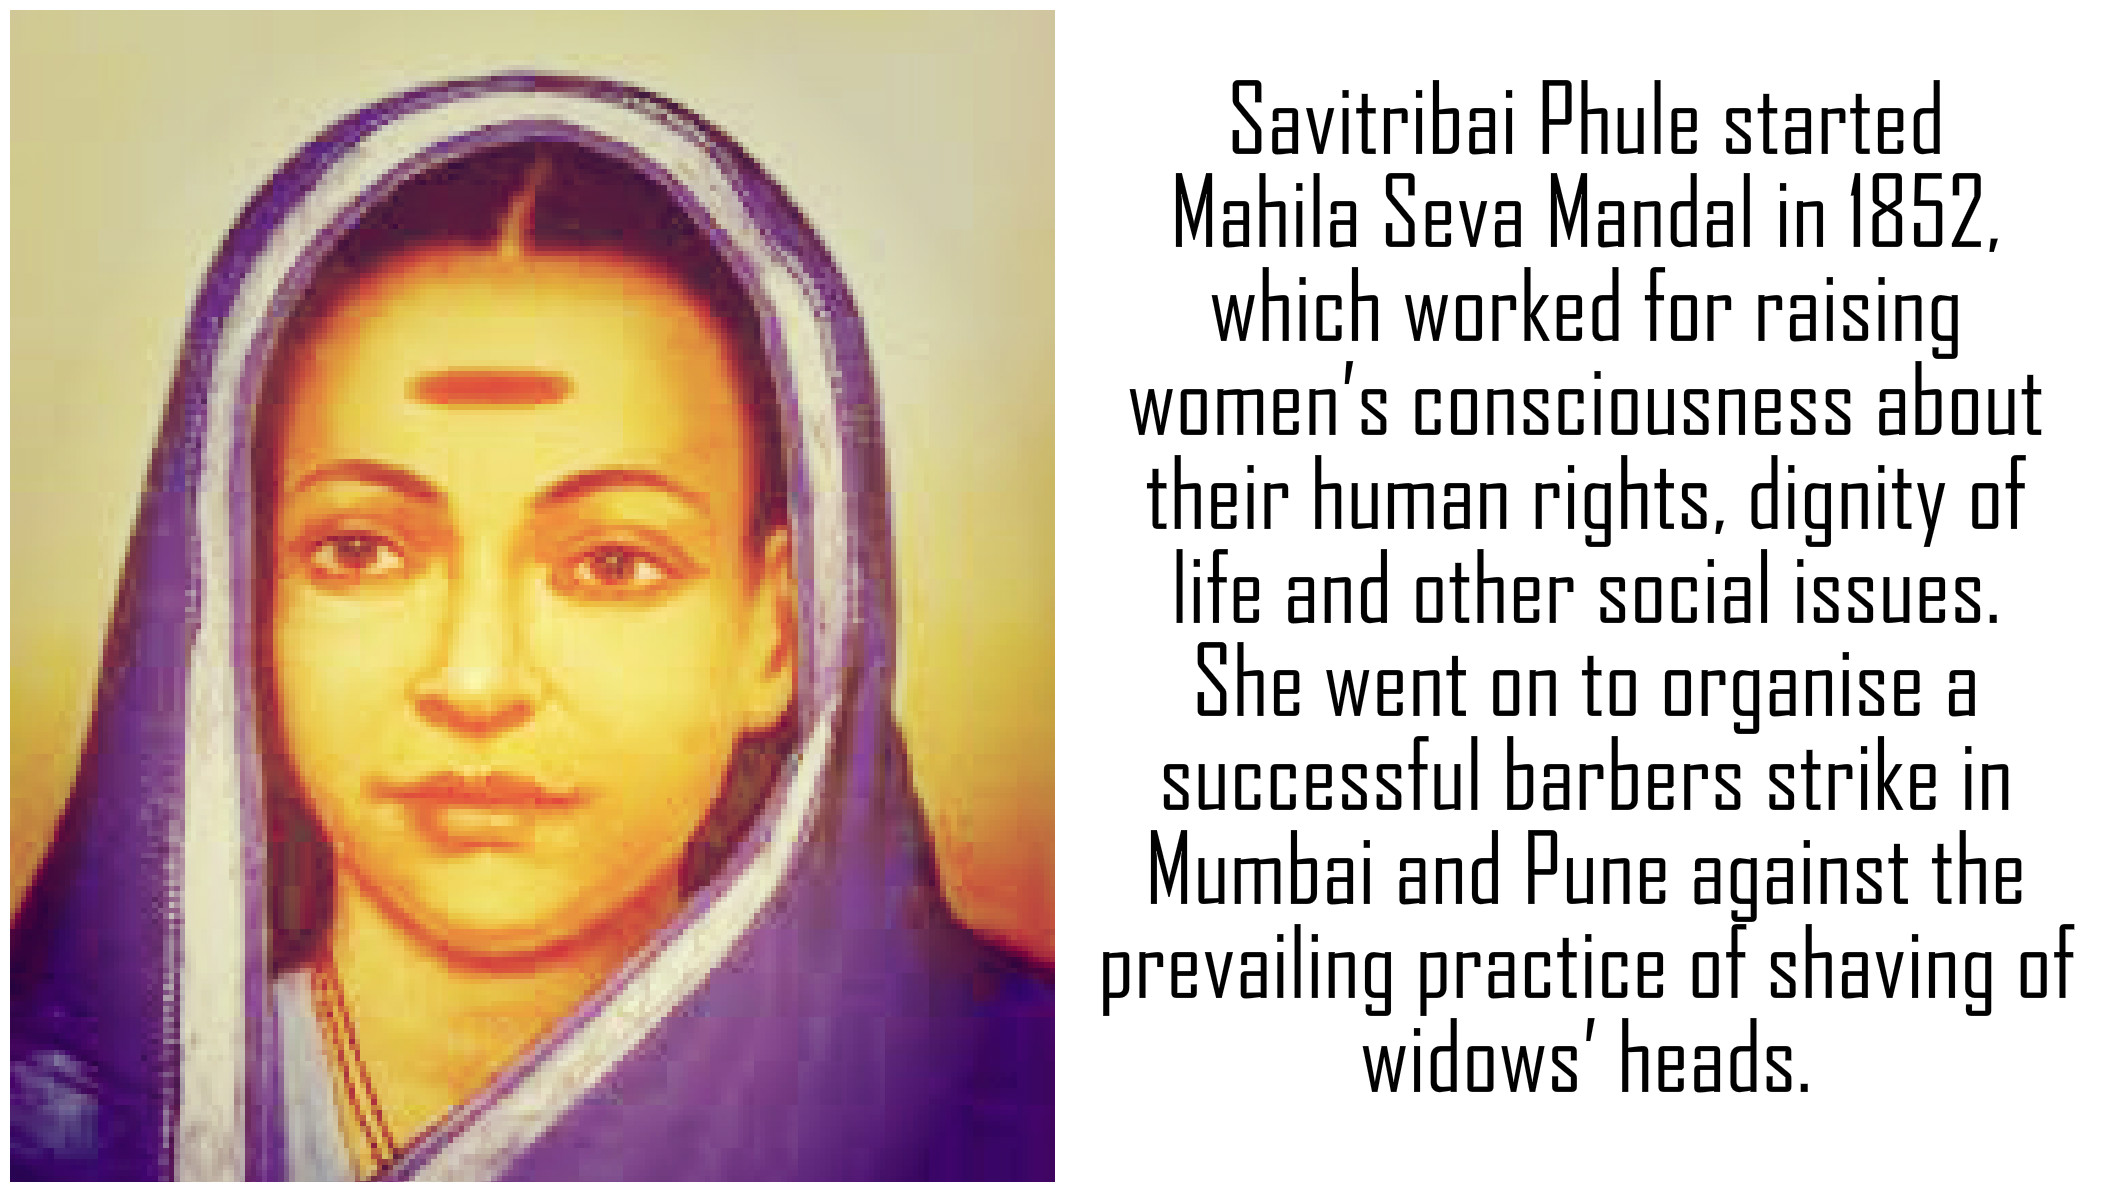 savitribai phule quotes dr b r ambedkar s caravan also mahatma jotiba phule and savitribai phule s contribution towards women empowerment